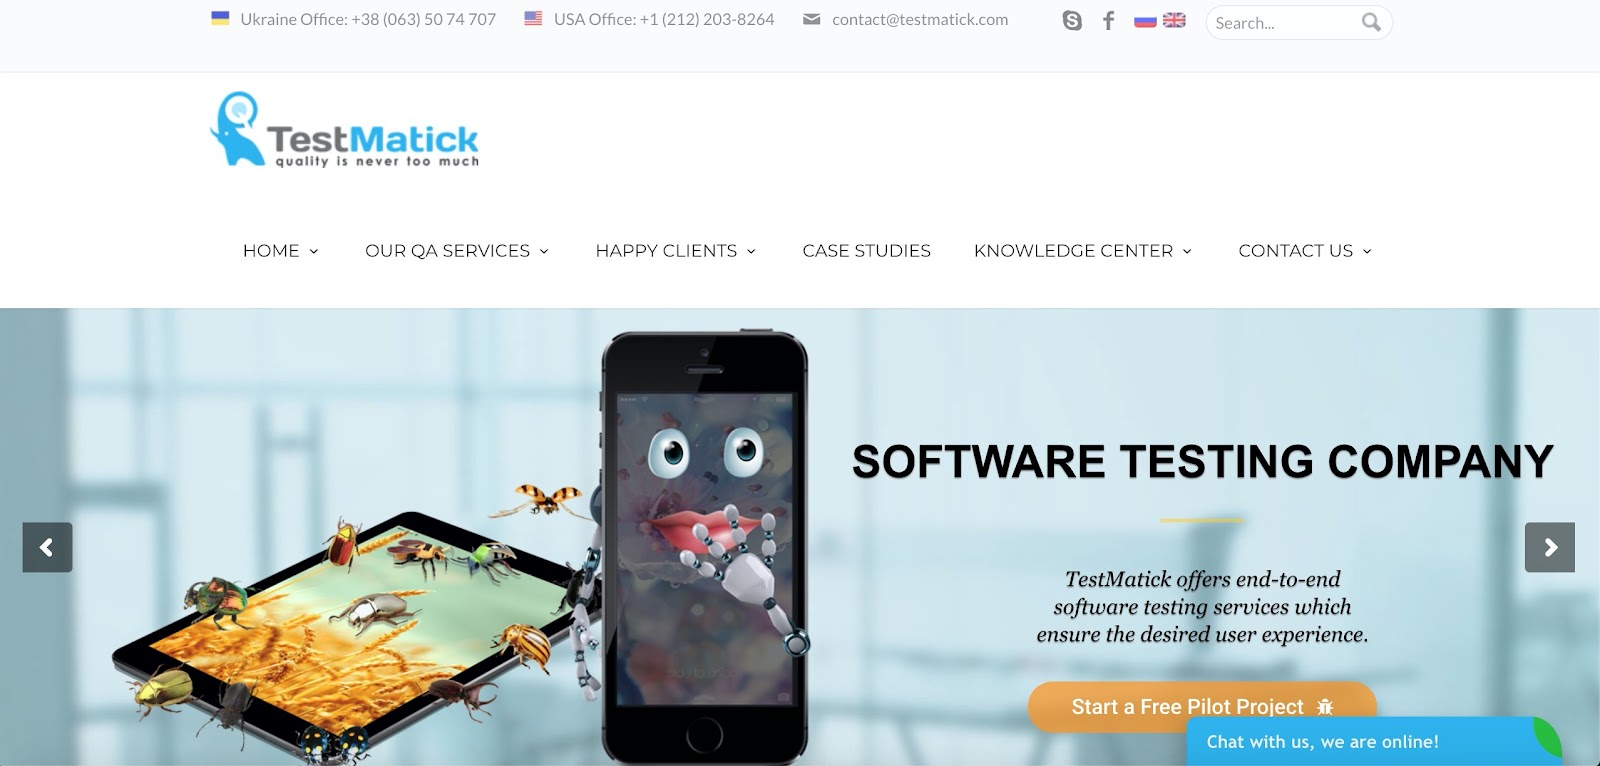 TestMatick is one of the Software Testing Companies